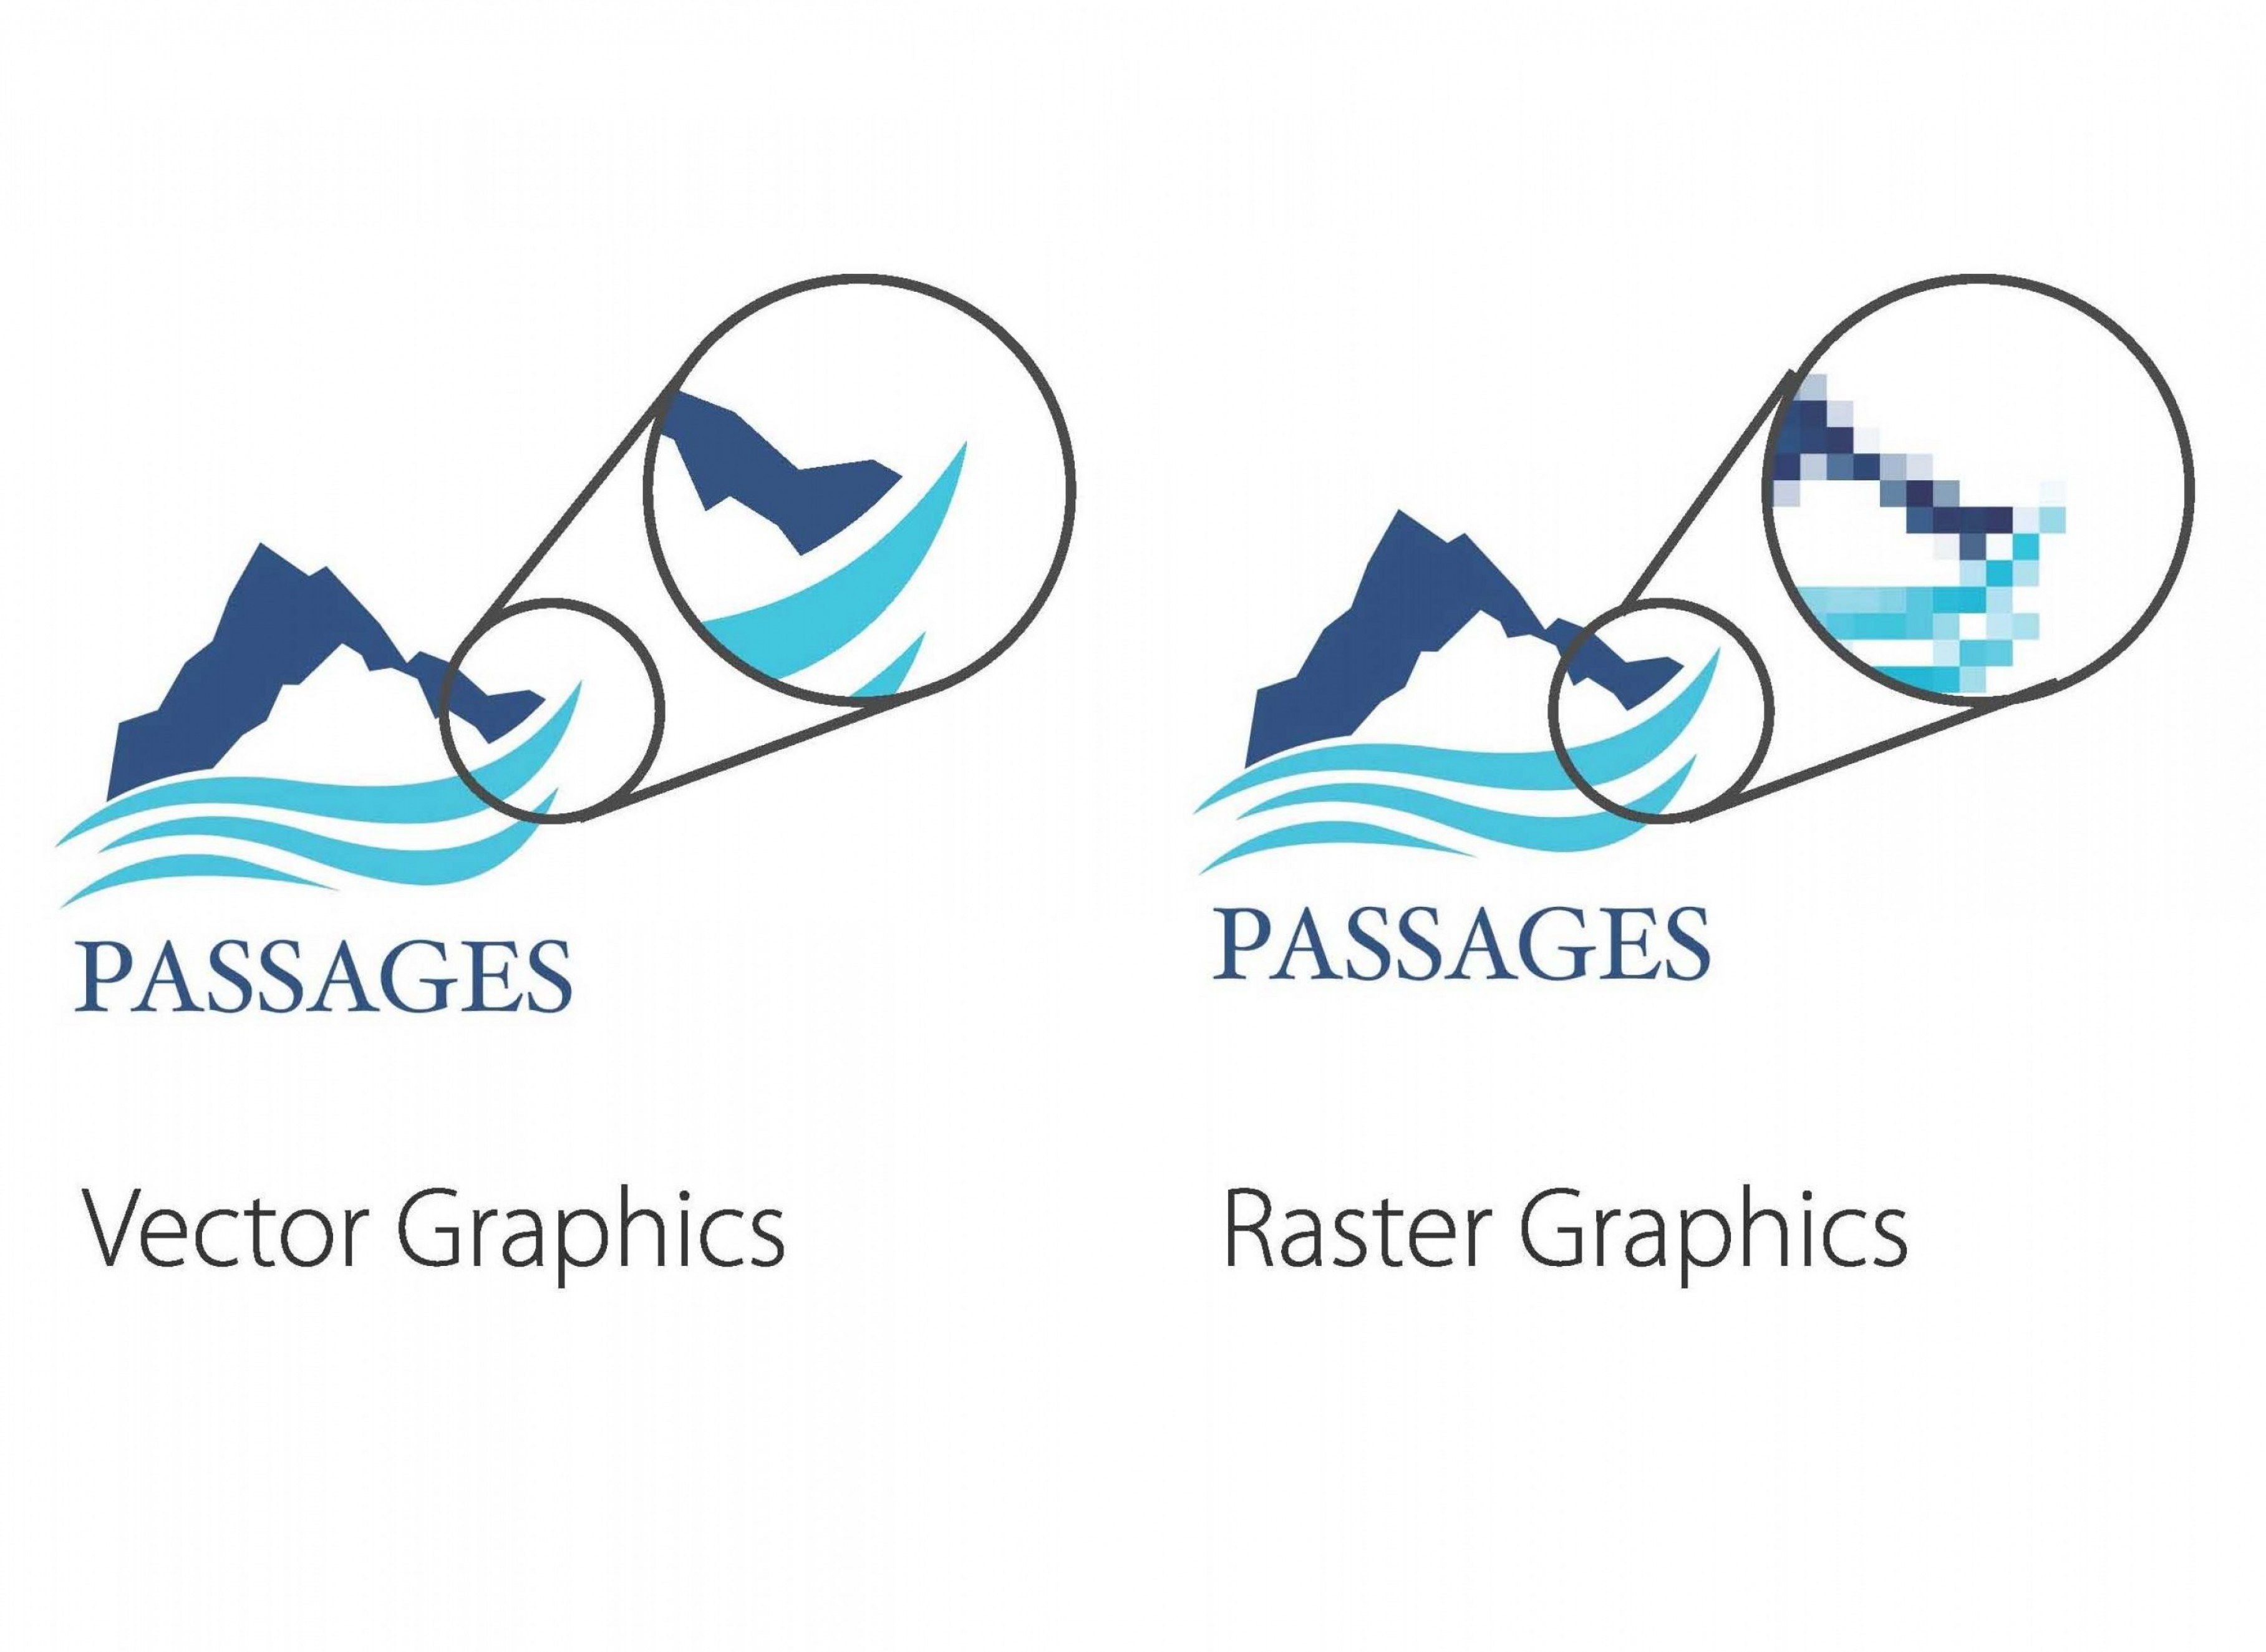 Bitmap To Vector Graphics: Differentiate Between Raster And Vector Graphics